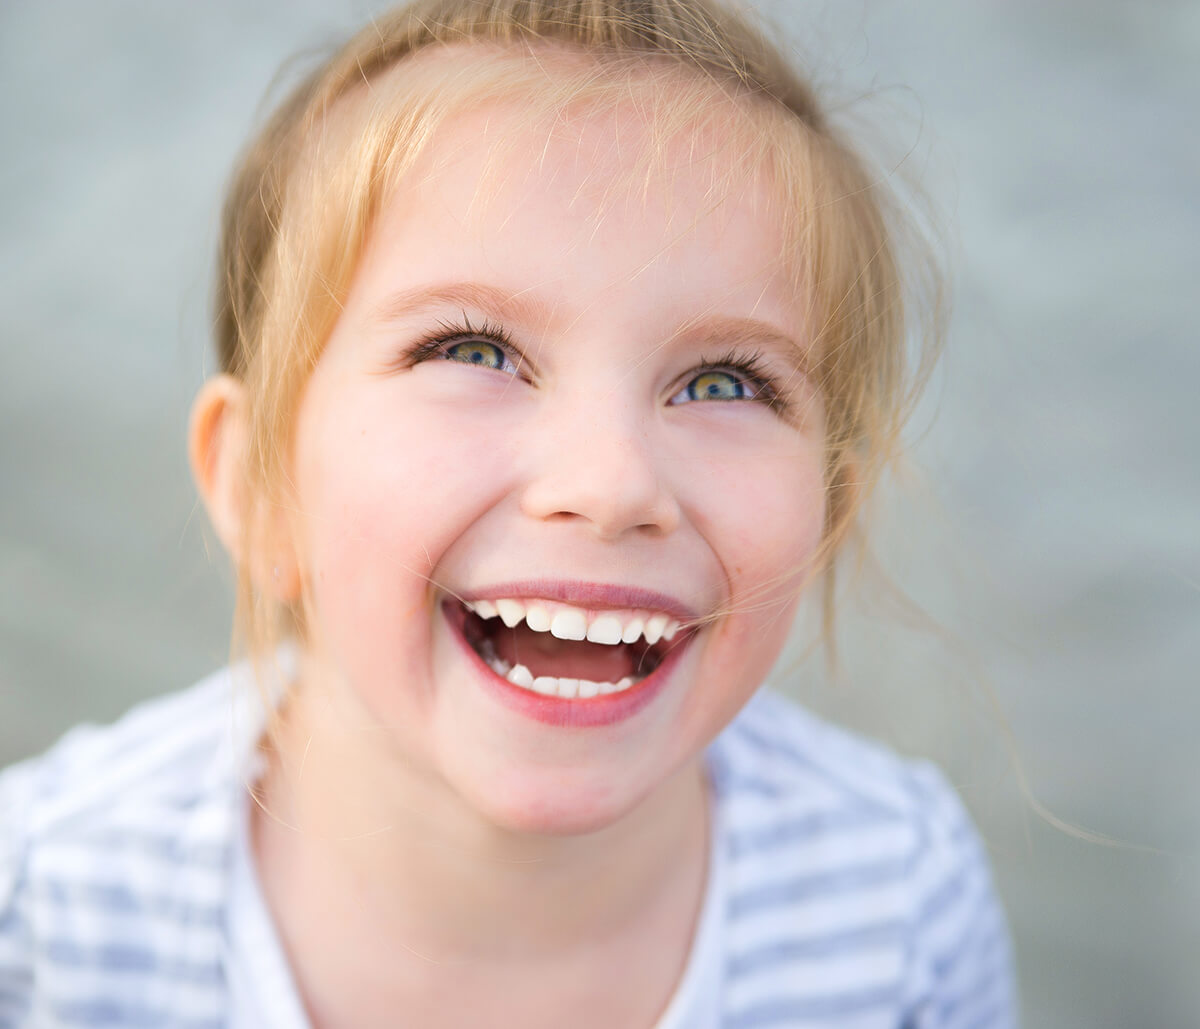 Finding A Quality Dental Office for Your Kids in Houston TX Area